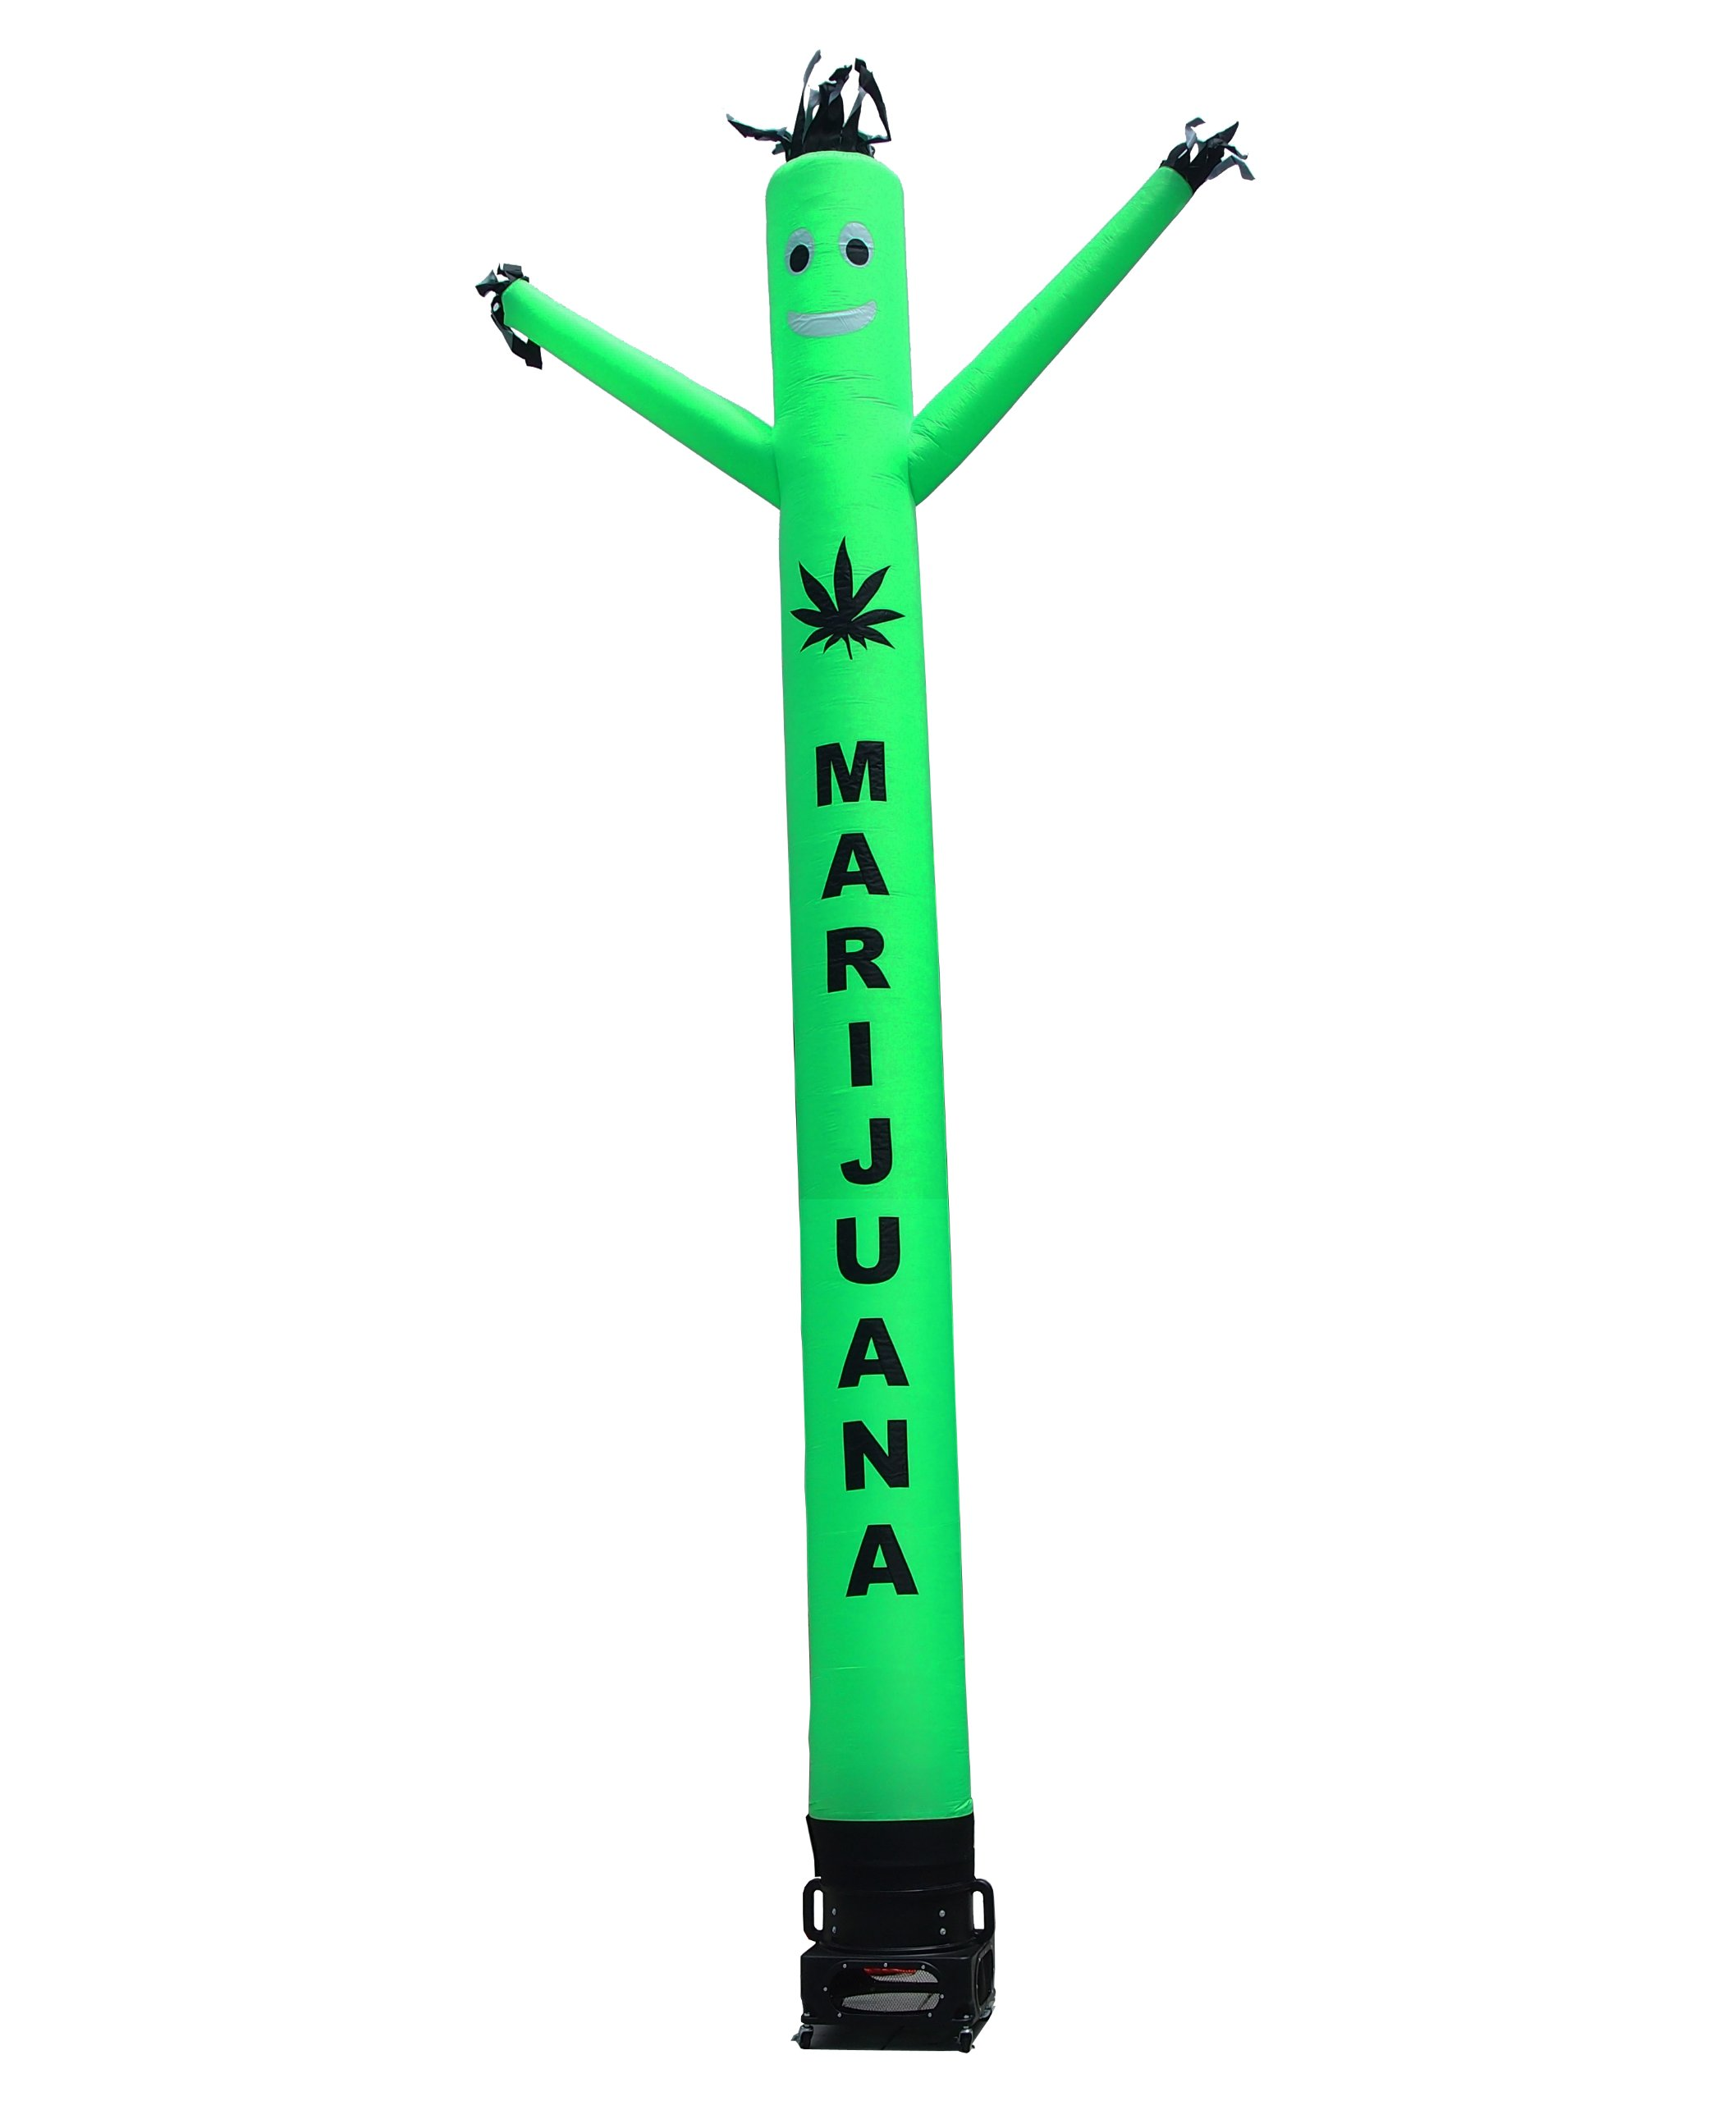 Marijuana Air Dancer & Blower Complete Set - w/Lettering & Marijuana Leaf Logo - 20ft Green Wacky Inflatable Tube Man Sky Dancer with Blower by LookOurWay (Image #1)